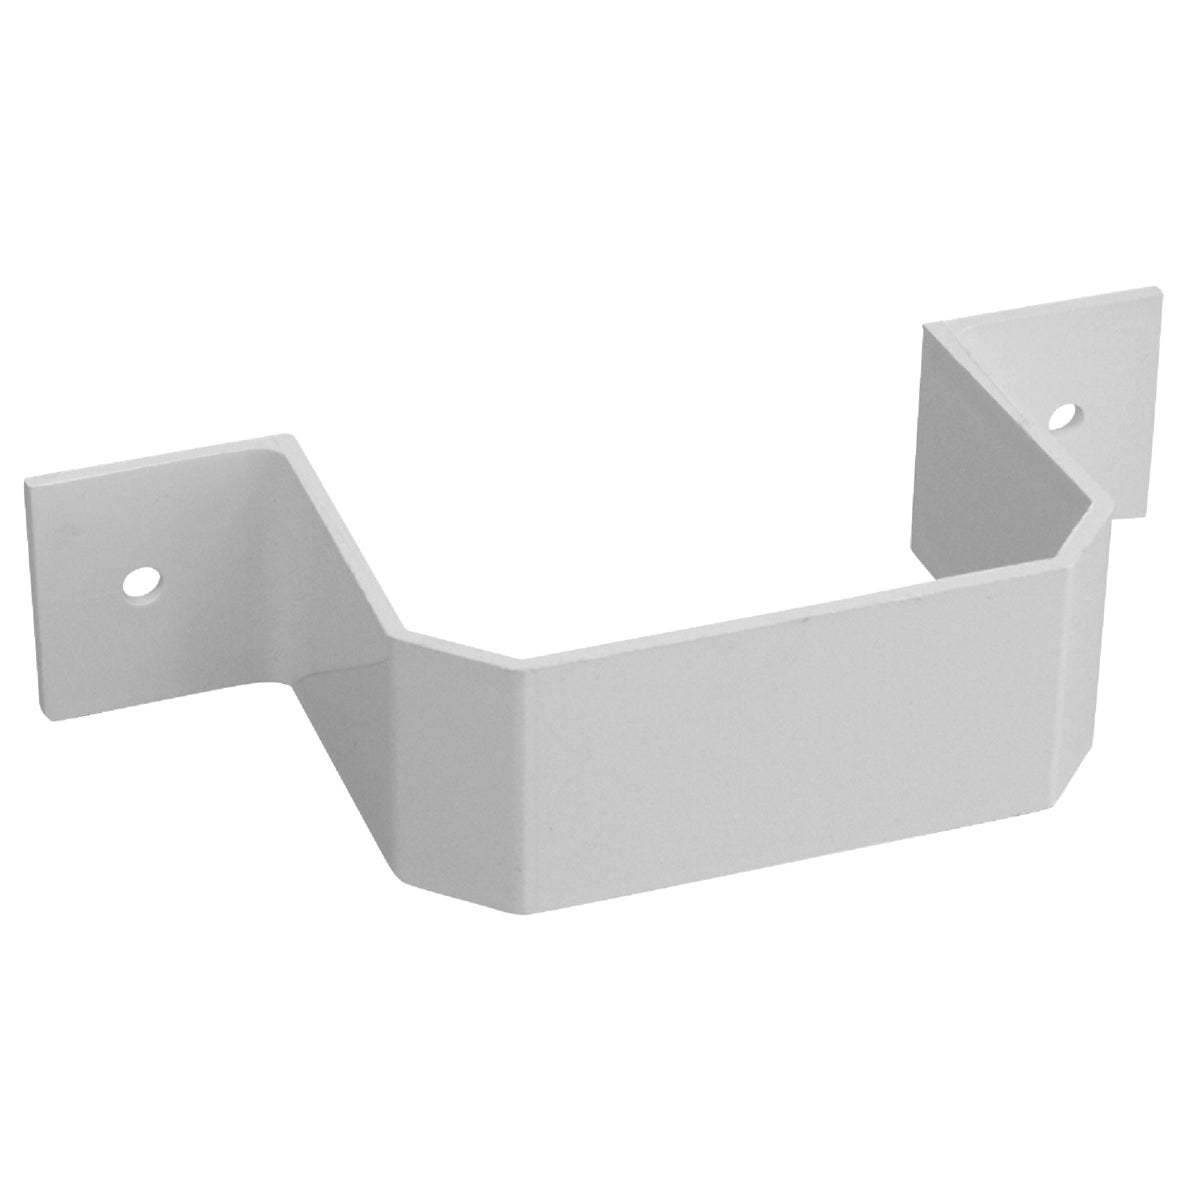 2X3WHT DOWNSPOUT BRACKET